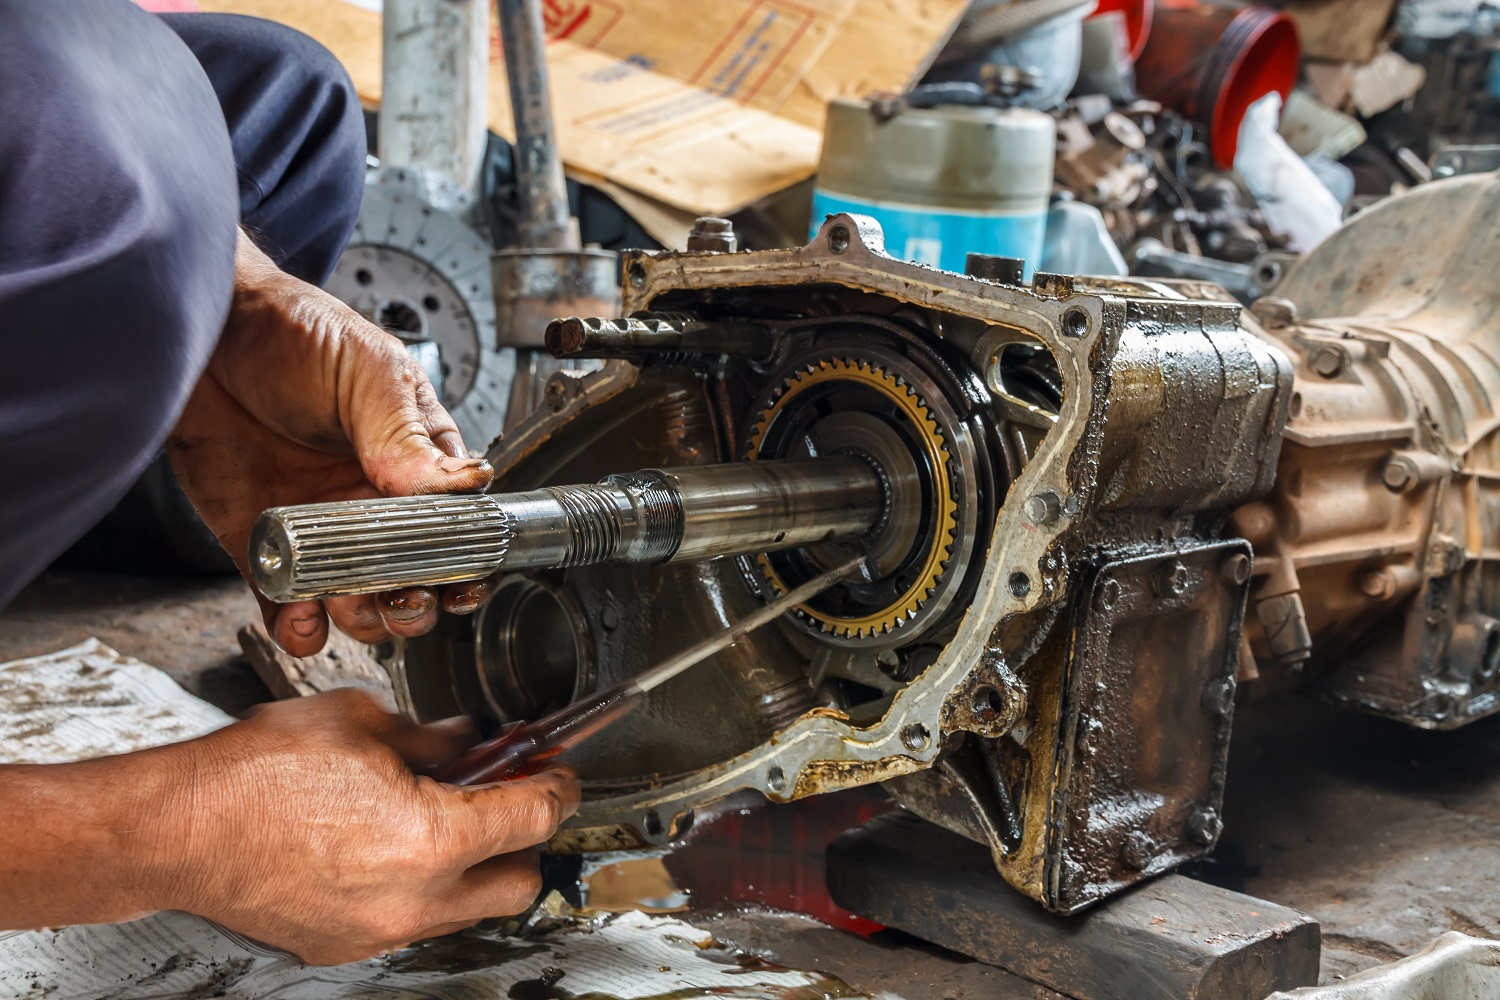 What Is The Process For Rebuilt Transmissions?